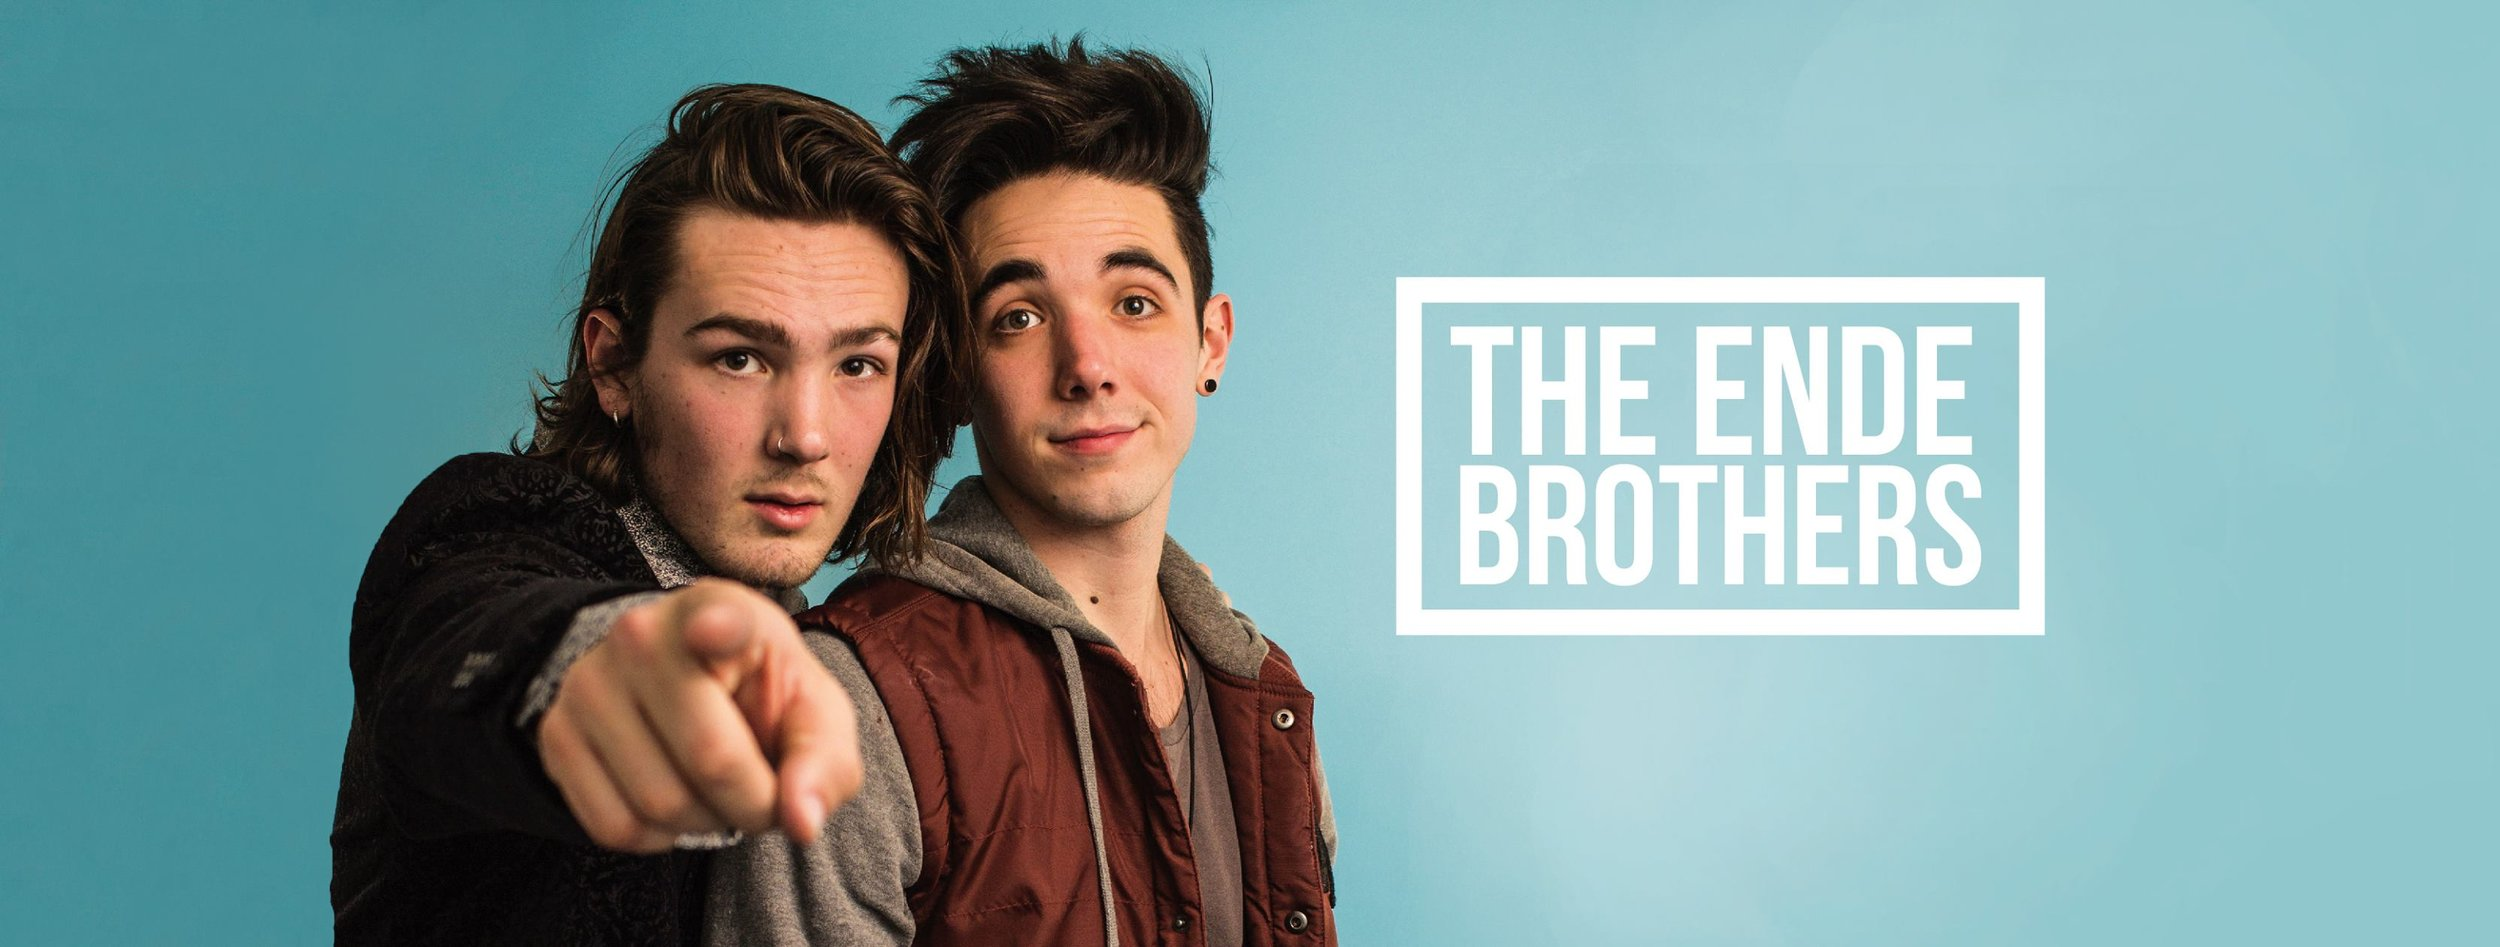 The Ende Brothers.jpg